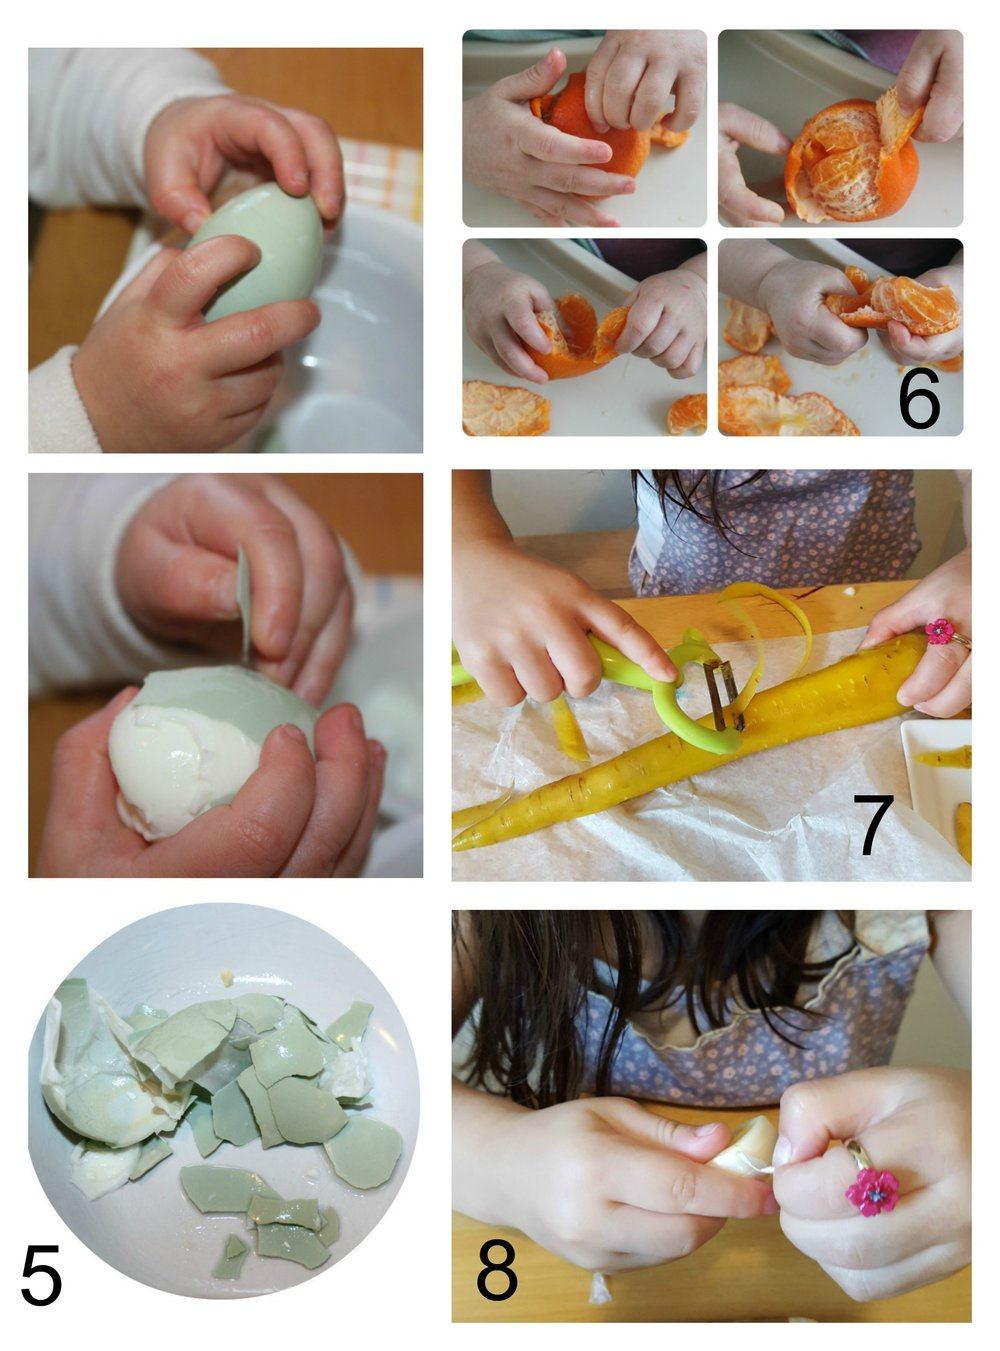 Peeling using fingers (egg, garlic, mandarin orange) or using a peeler